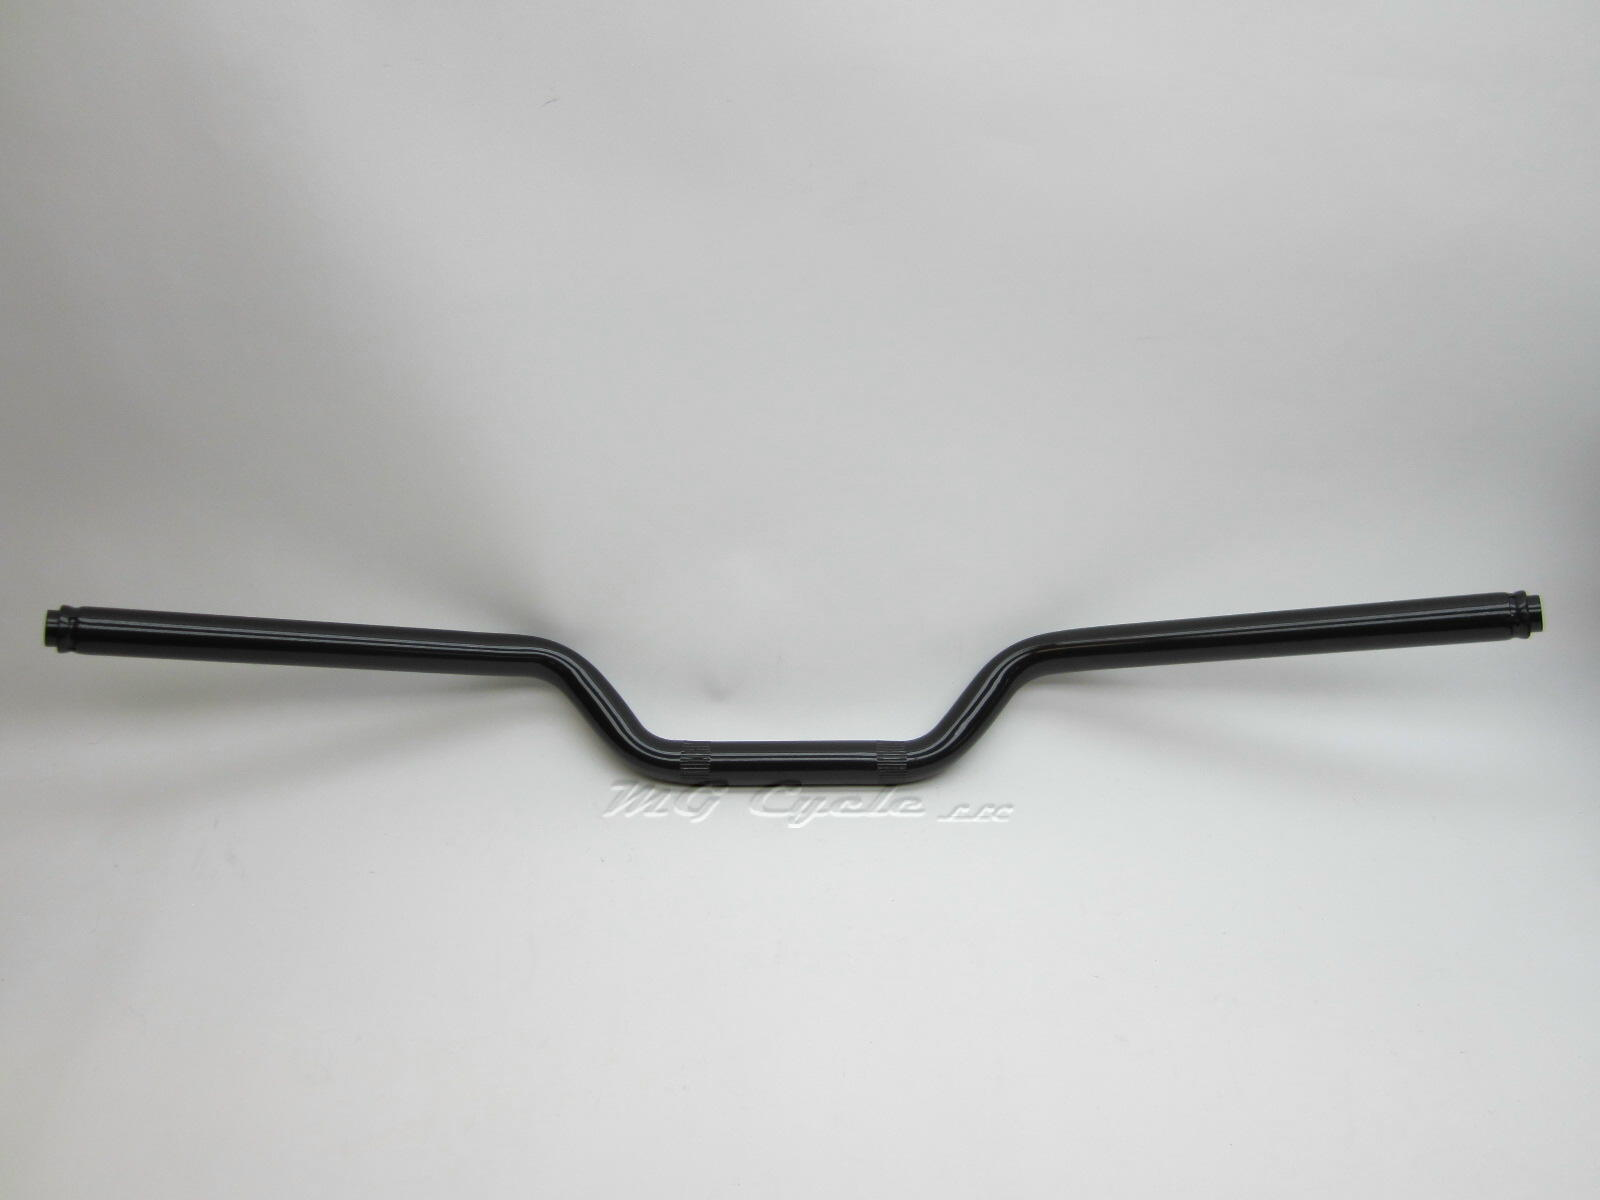 handlebar for Breva 750